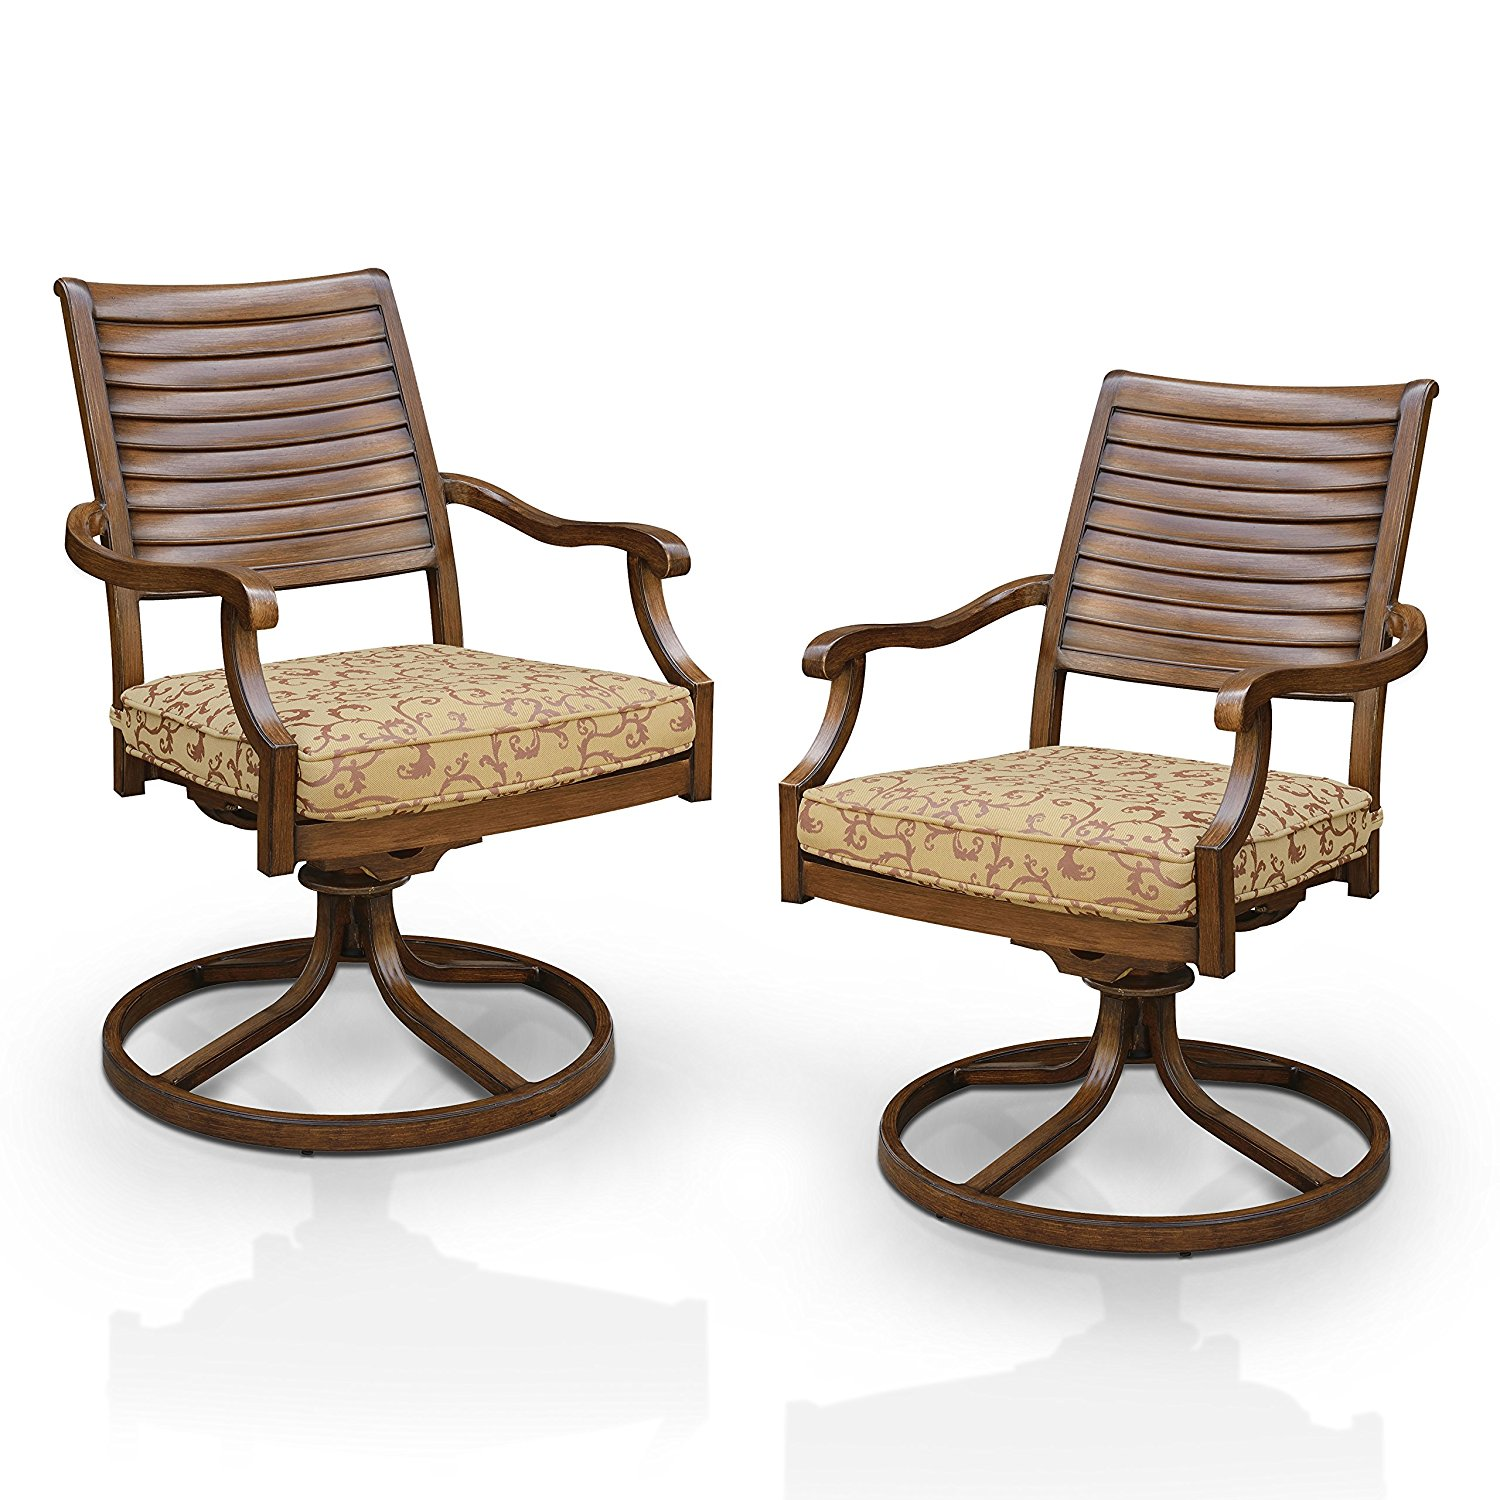 cheap rocking chairs find rocking chairs deals on line at alibaba com